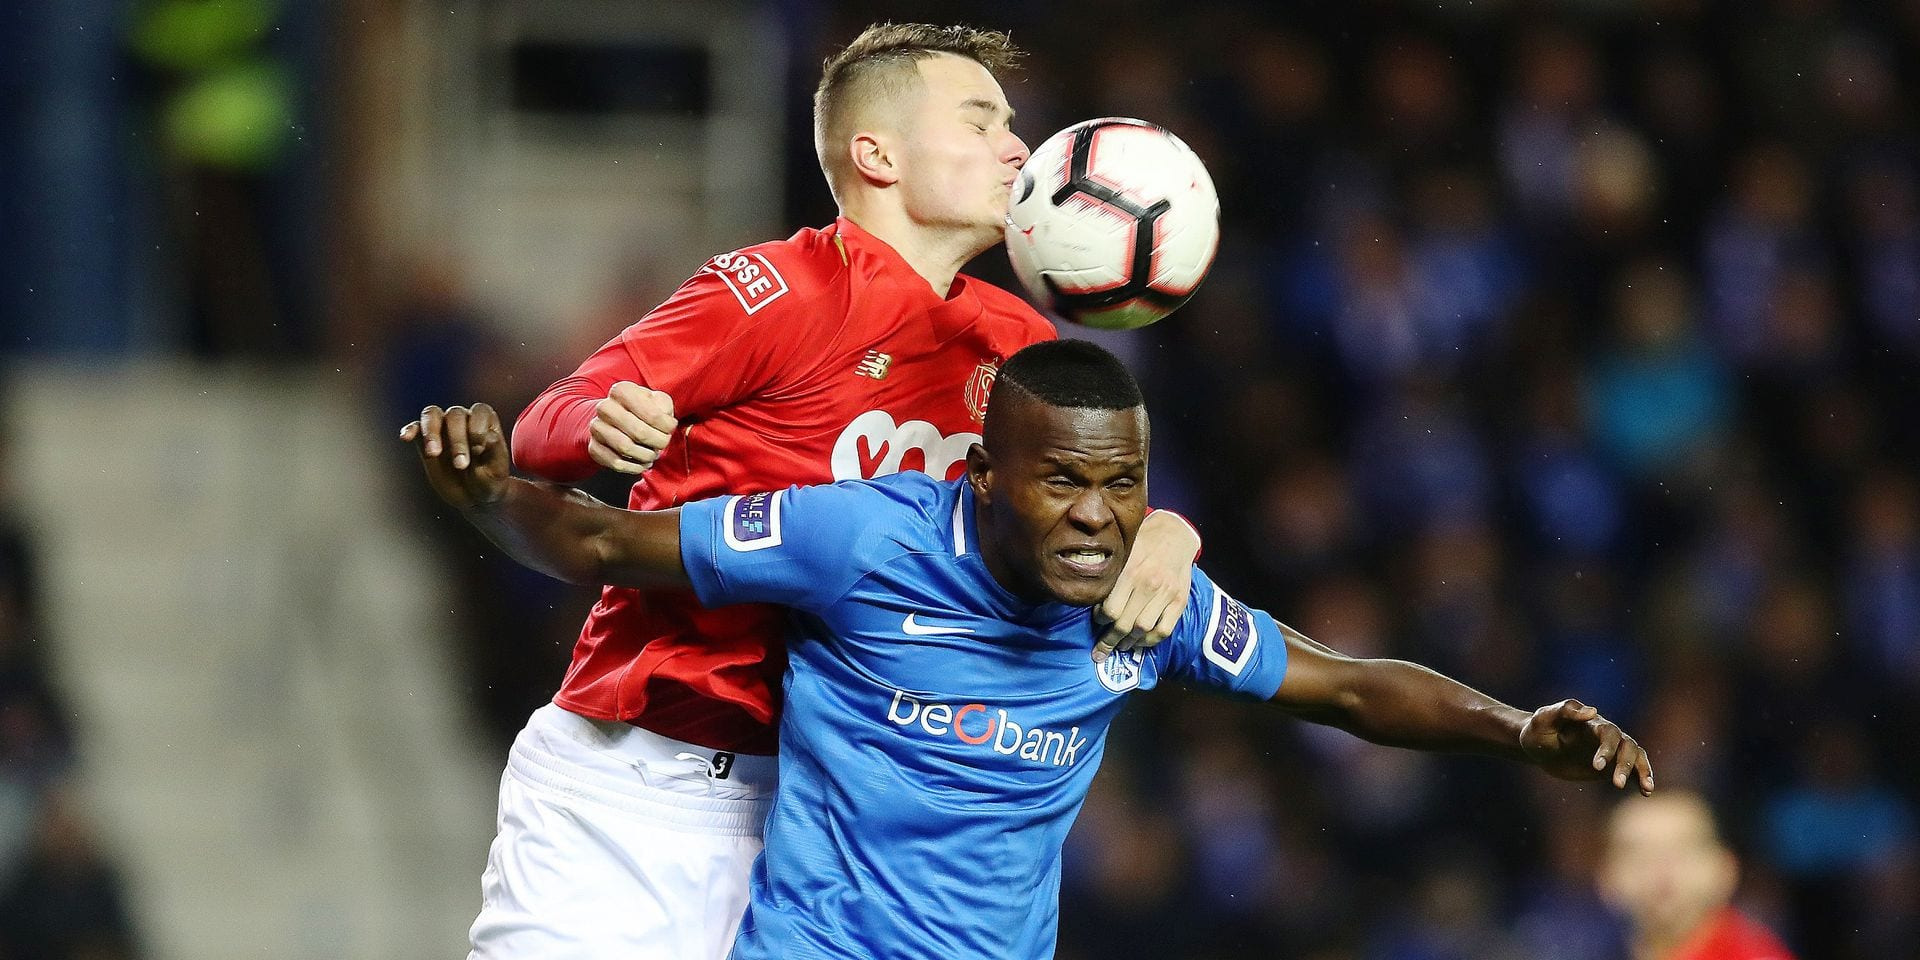 Standard's Zinho Vanheusden and Genk's Aly Mbwana Samatta fight for the ball during a soccer match between KRC Genk and Standard de Liege, Friday 08 February 2019 in Genk, on the 25th day of the 'Jupiler Pro League' Belgian soccer championship season 2018-2019. BELGA PHOTO BRUNO FAHY